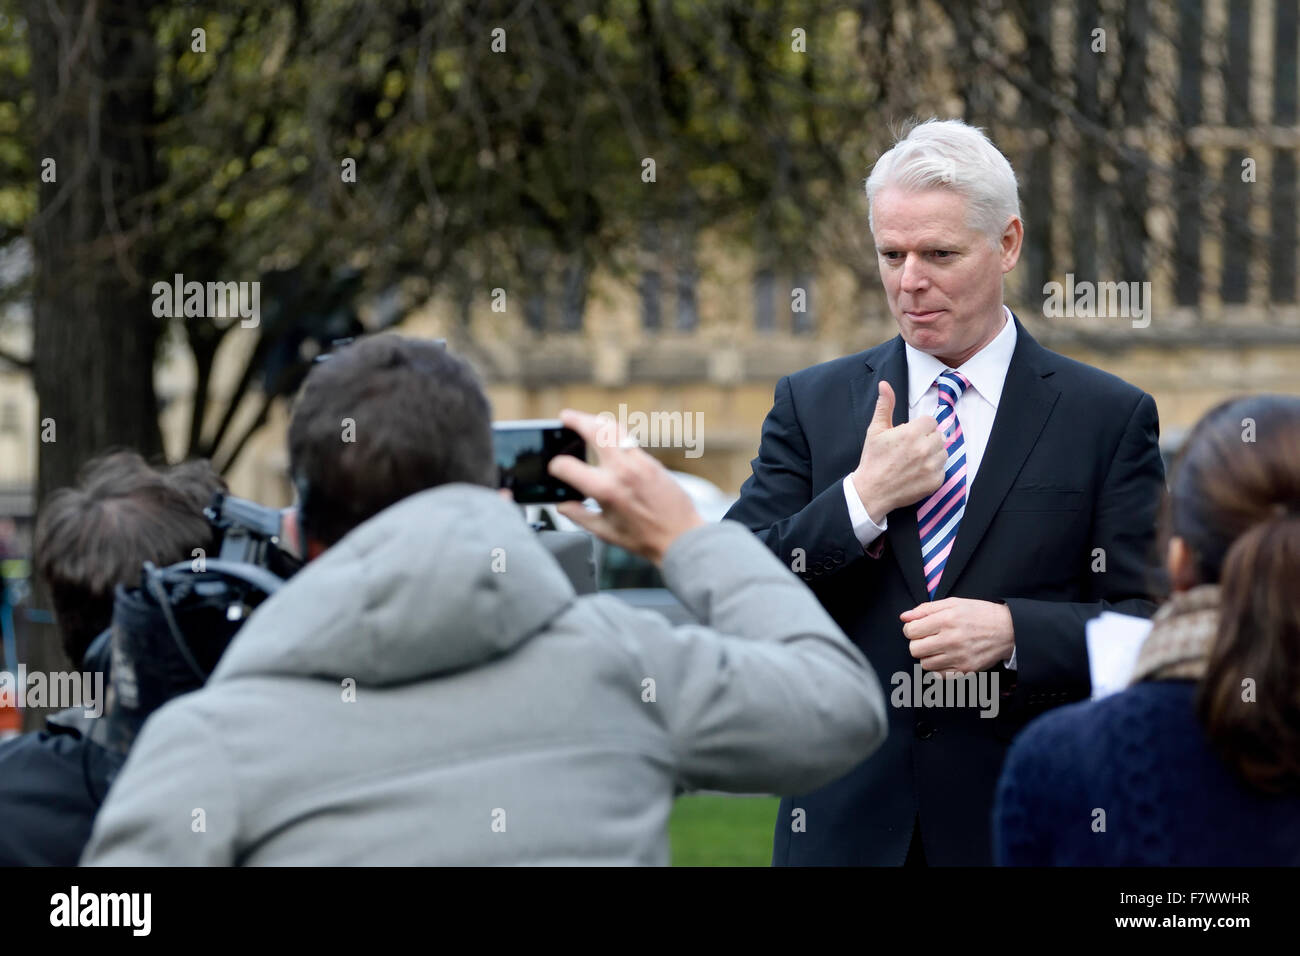 Clive Mason, deaf British TV presenter, using sign language to camera in an outside broadcast in London, 2015 - Stock Image